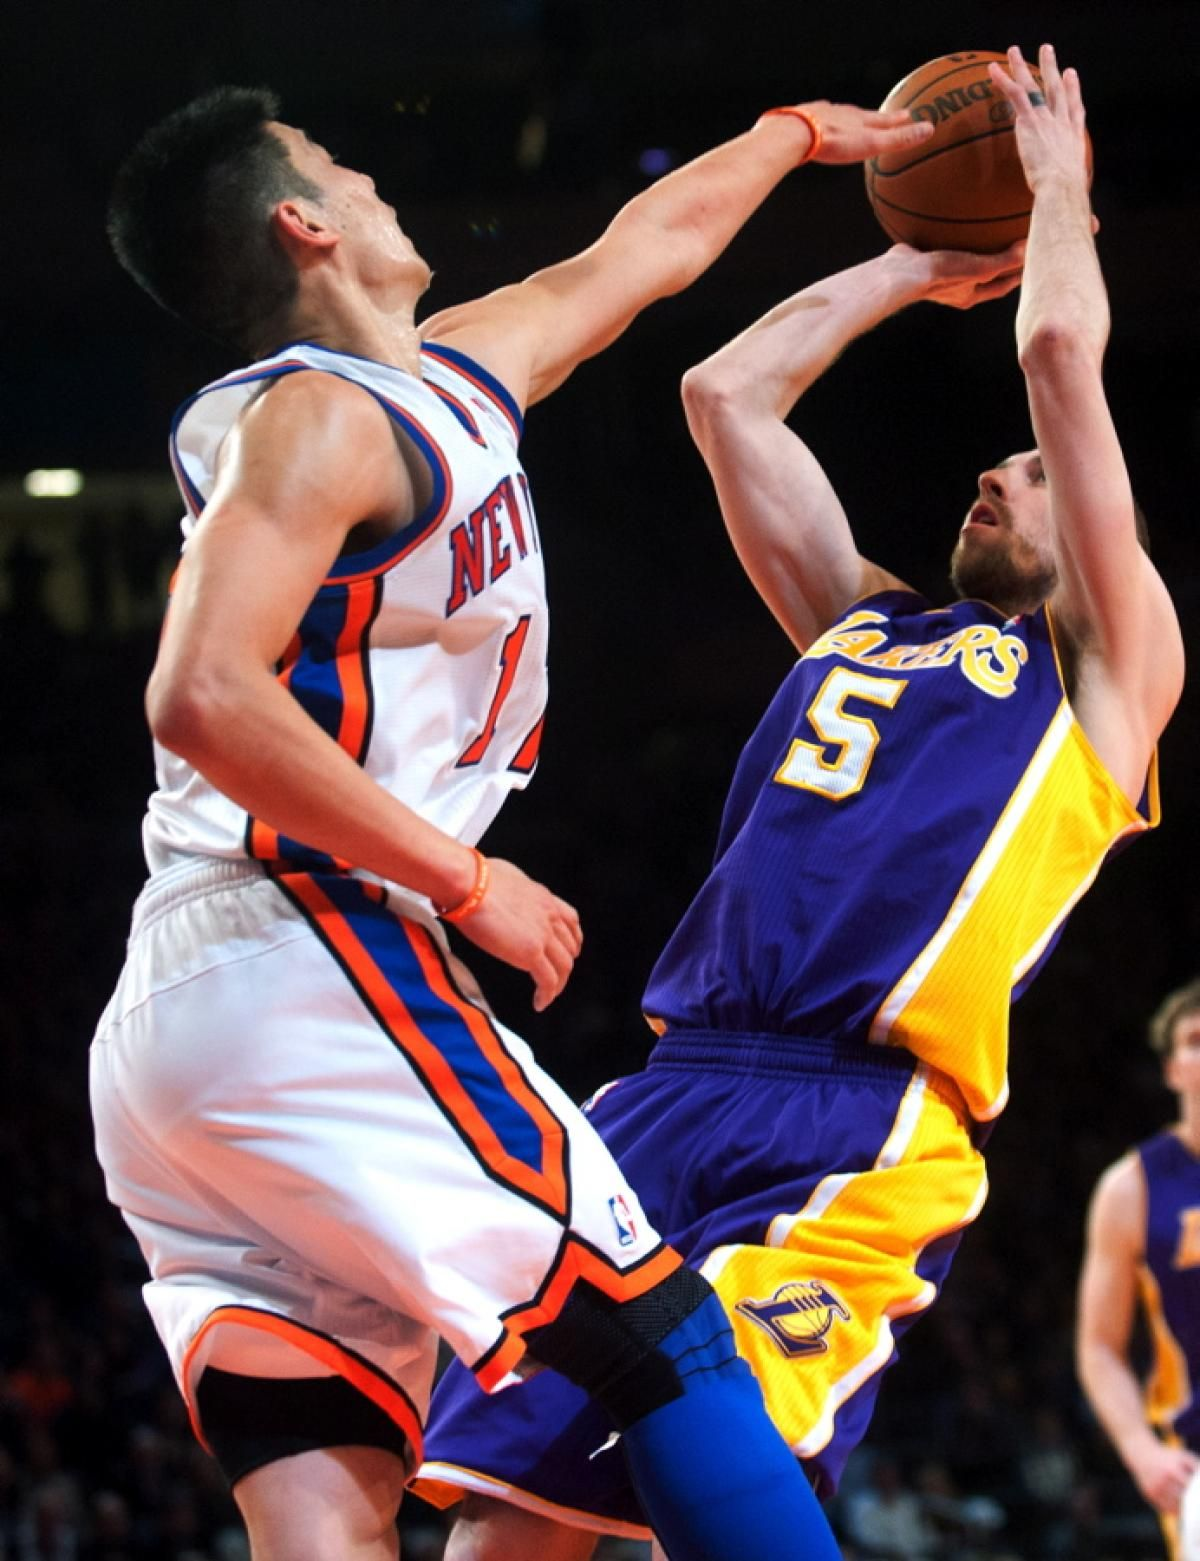 In a 38-point performance, Jeremy Lin shows his ability to defend against Steve Blake, who was limited to six points off the bench in a 98-85 win for the Knicks.